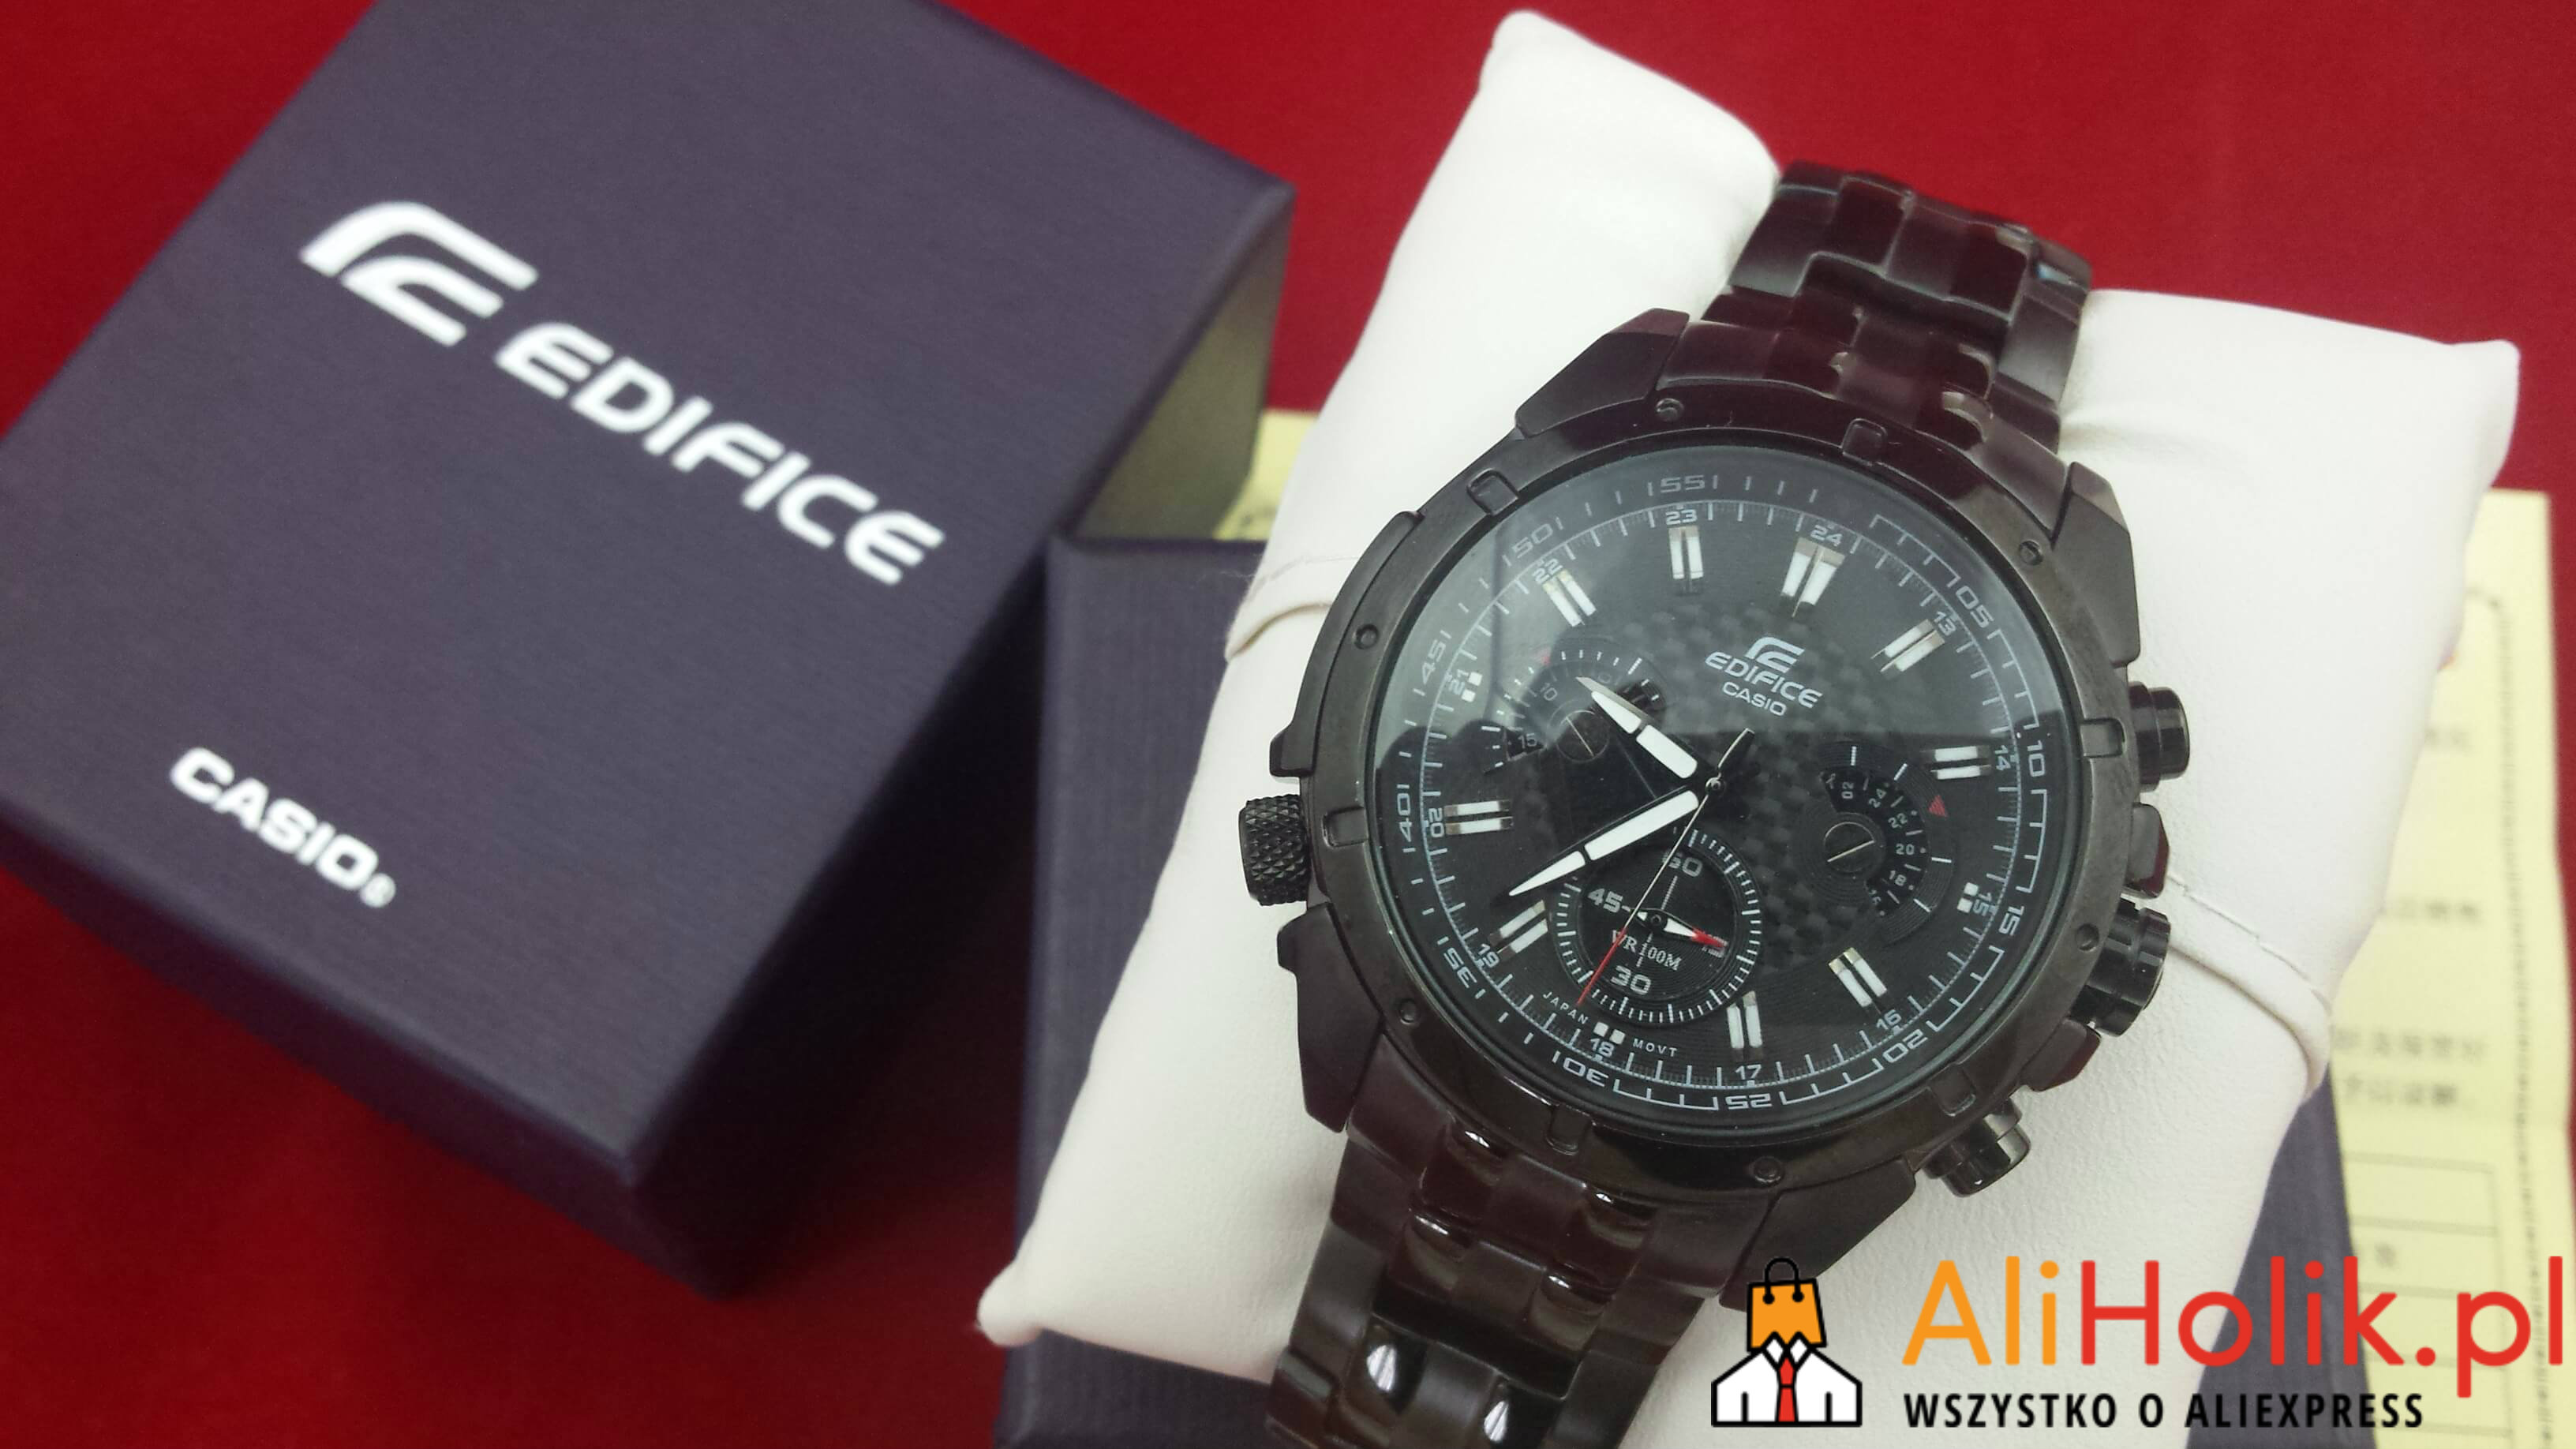 Zegarek Casio Edifice z Aliexpress